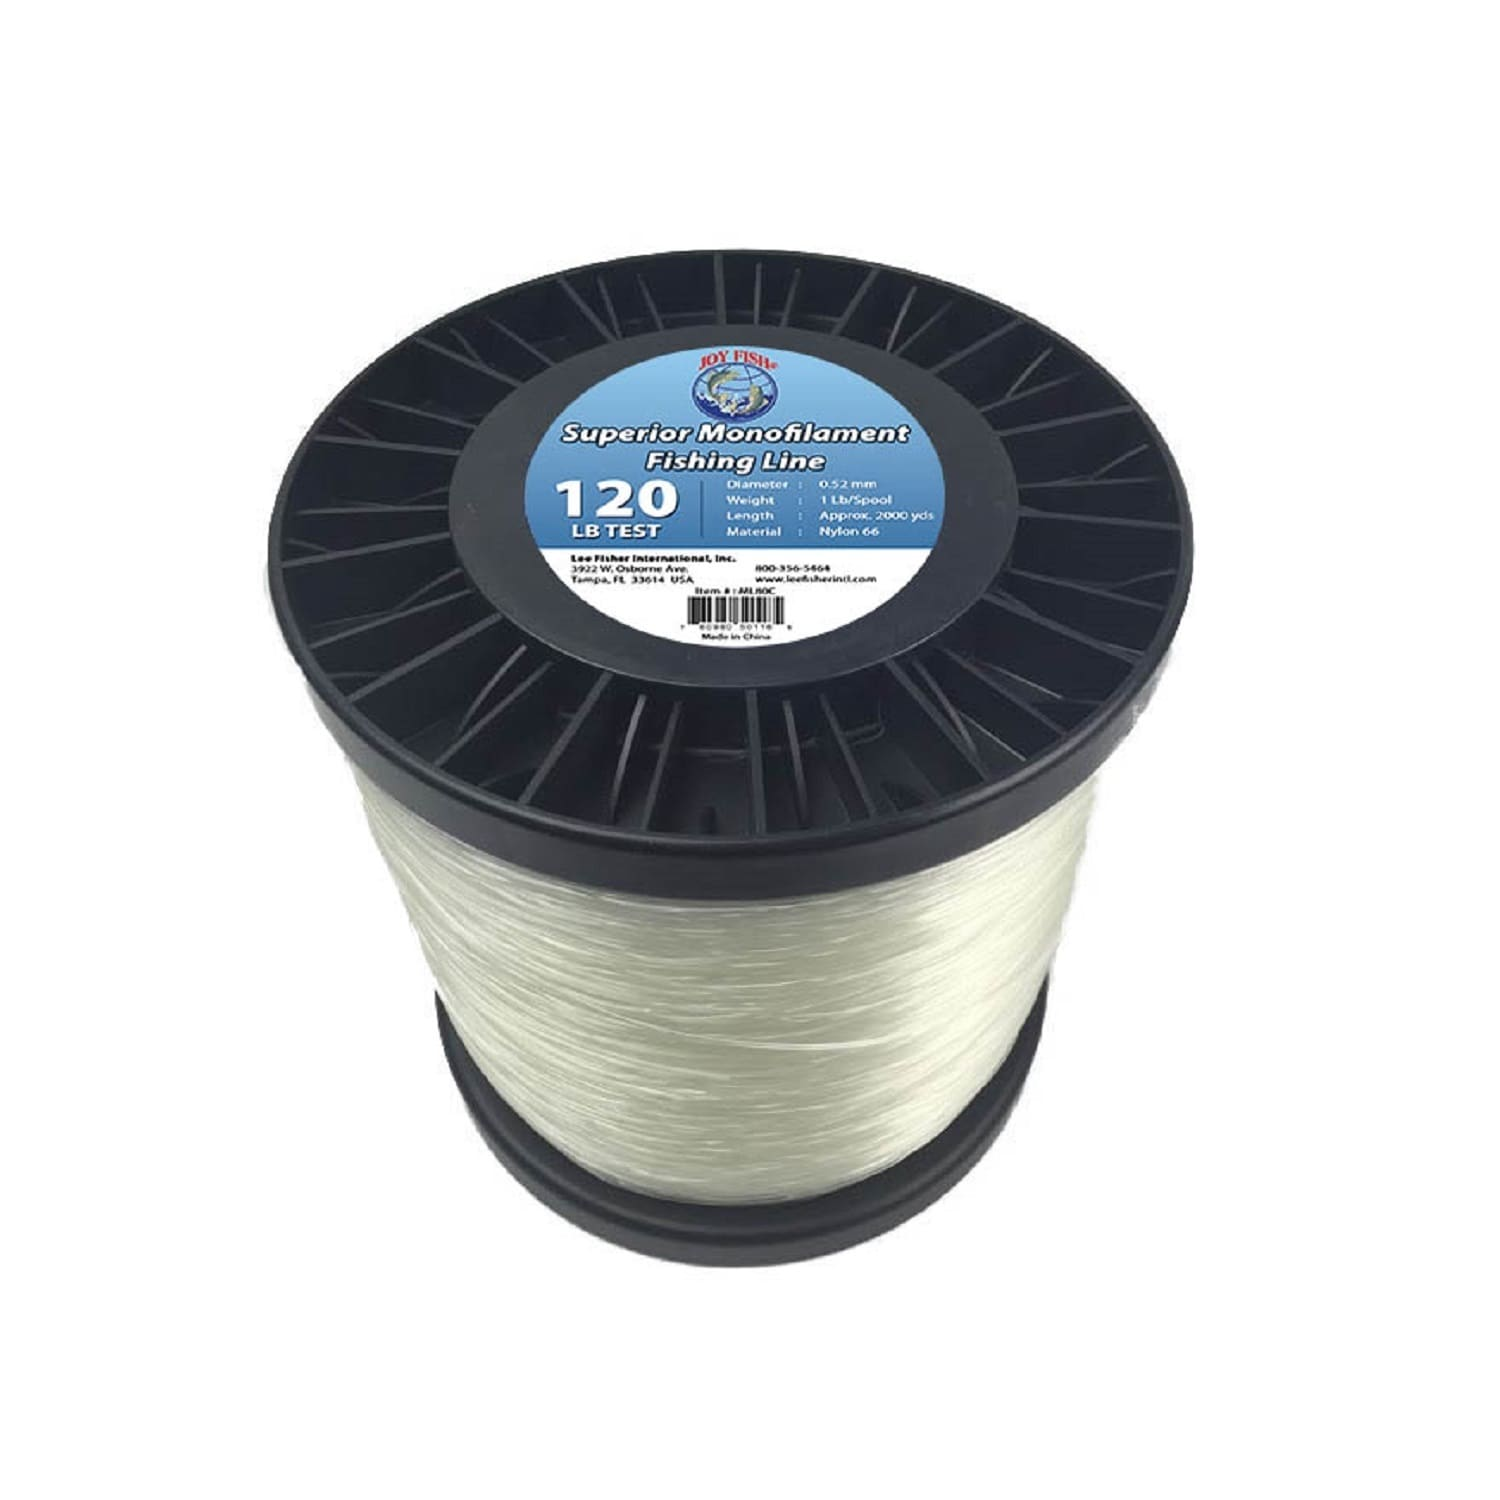 Click here to buy Joy Fish 5 lb Spool Monofilament Fishing Line, 120 lb, Hi-Vis by Lee Fisher.